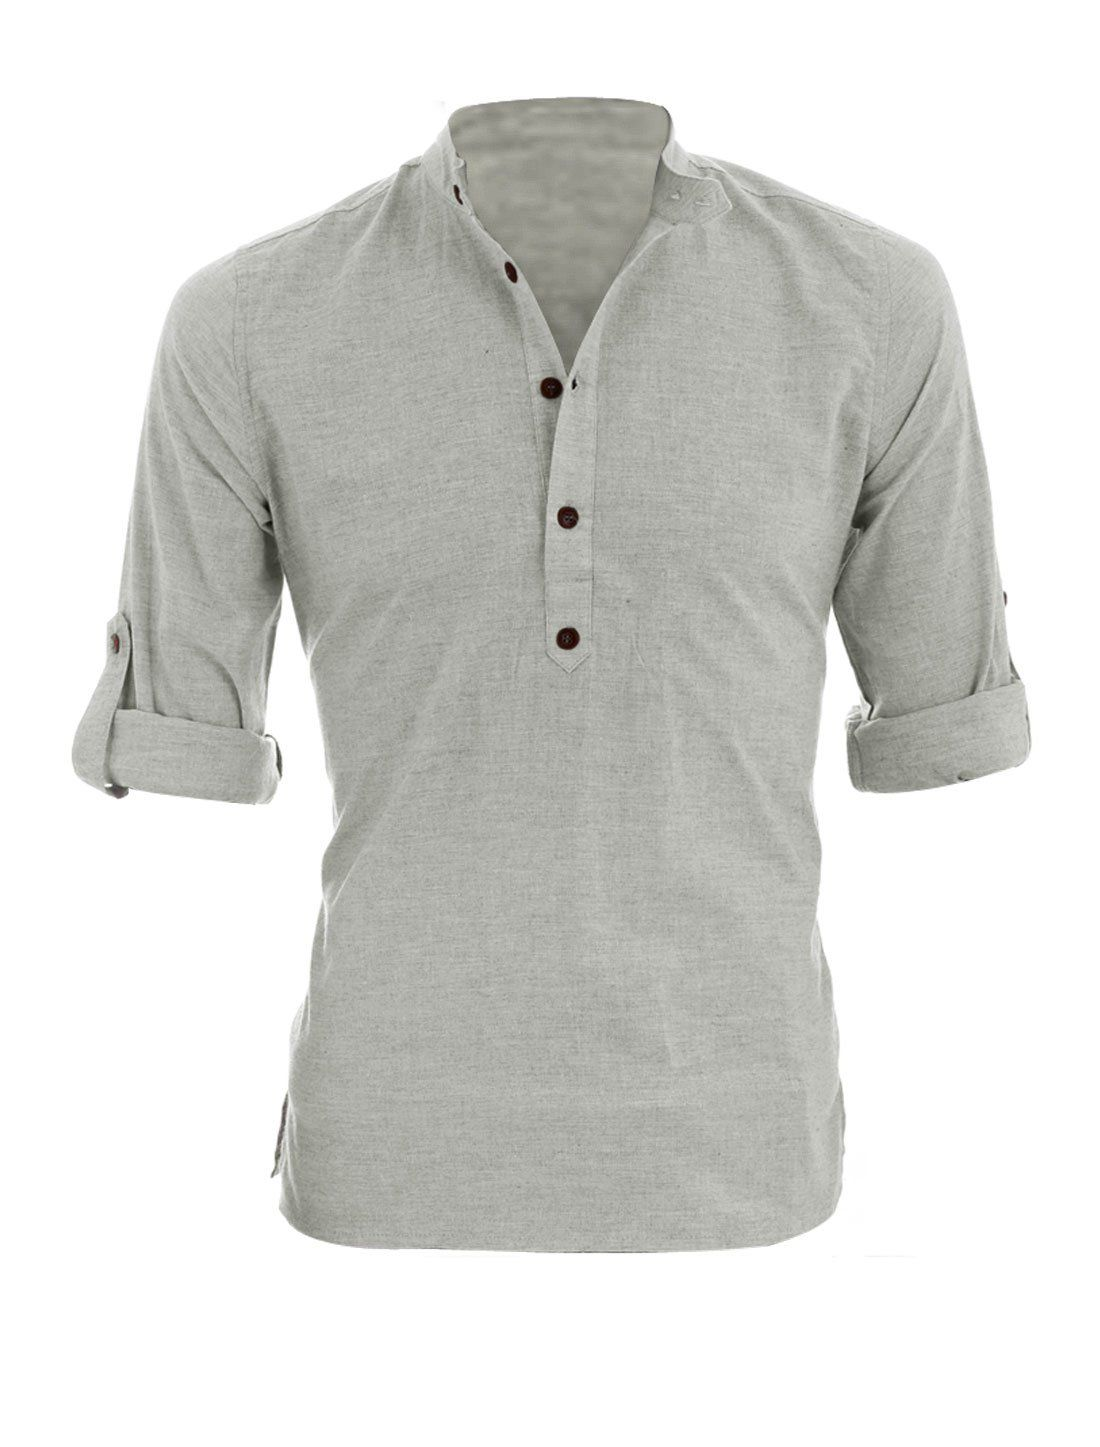 bbae99c8 Allegra K Men Half Placket Long Roll Up Sleeves Casual Shirt Light Gray L:  Amazon.co.uk: Clothing